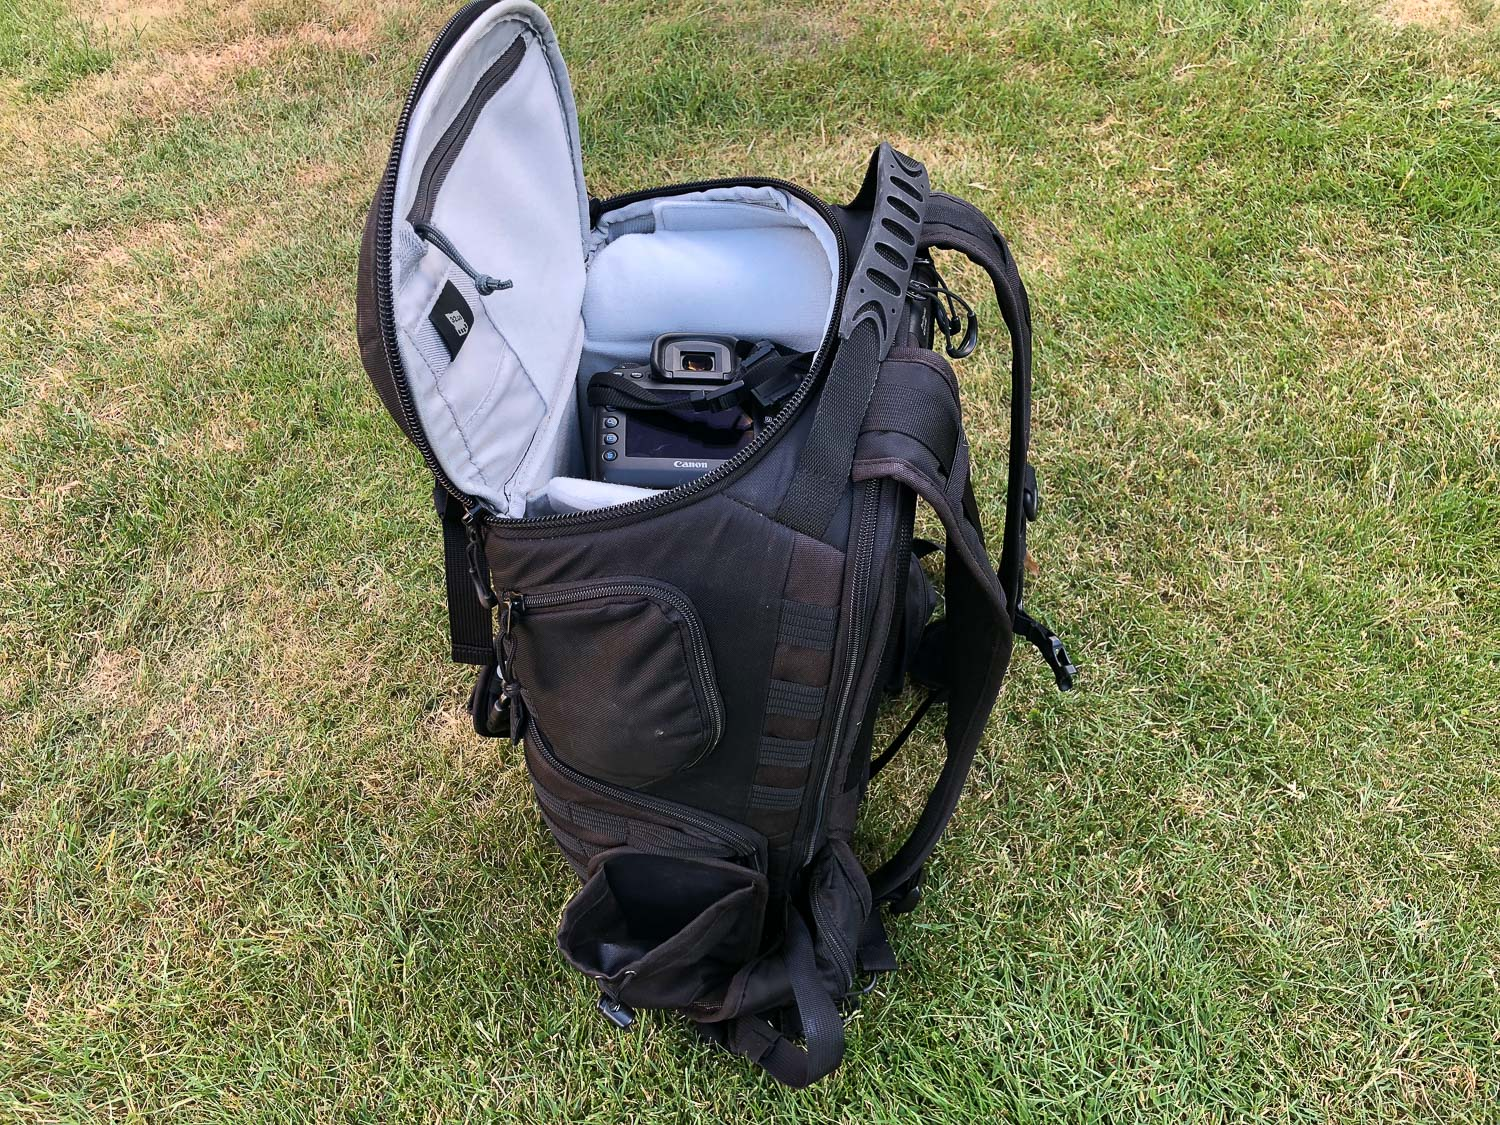 5 Camera Bags That Every Travel Photographer Needs - Lowepro ProTactic 450 AW Camera Backpack